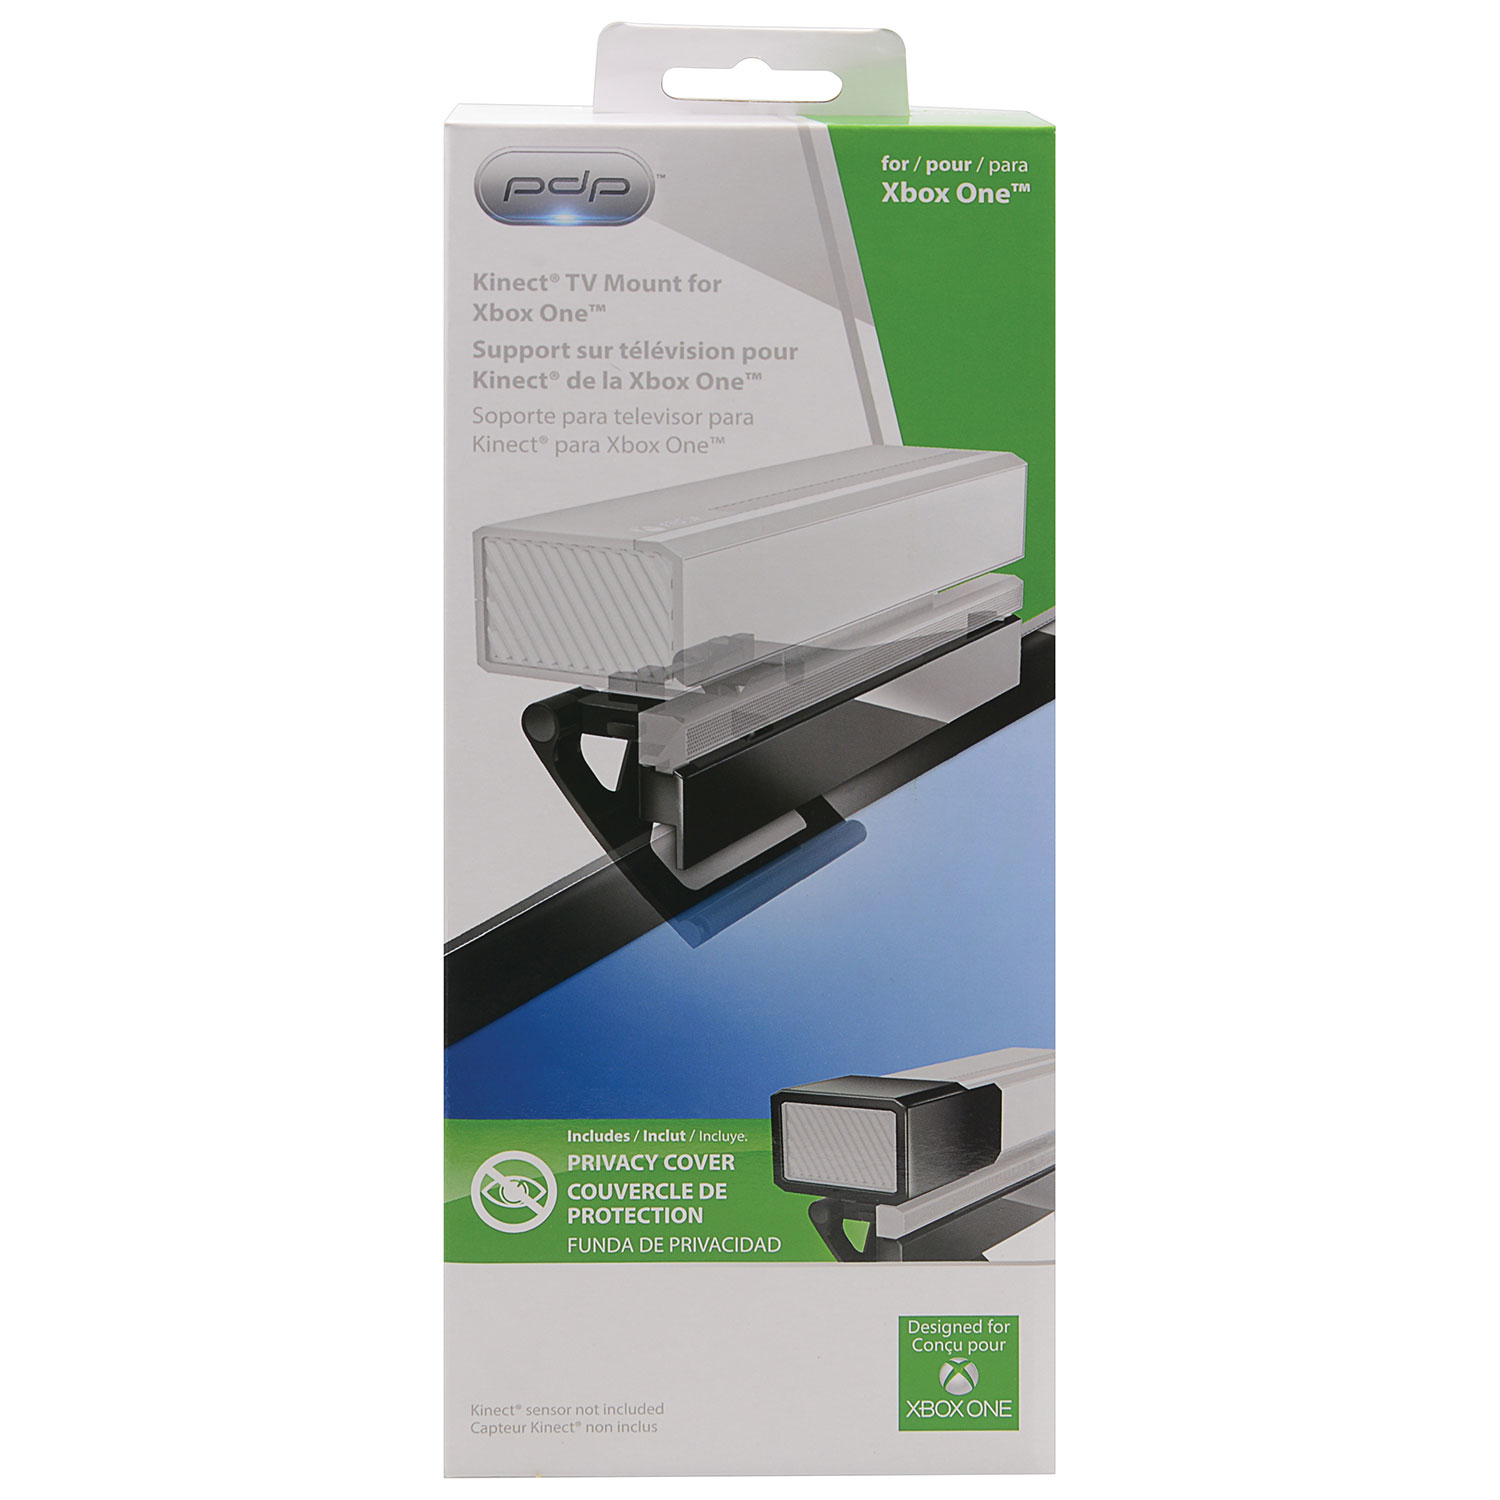 Pdp kinect sensor kit for xbox one xbox one kinect best buy canada sciox Gallery